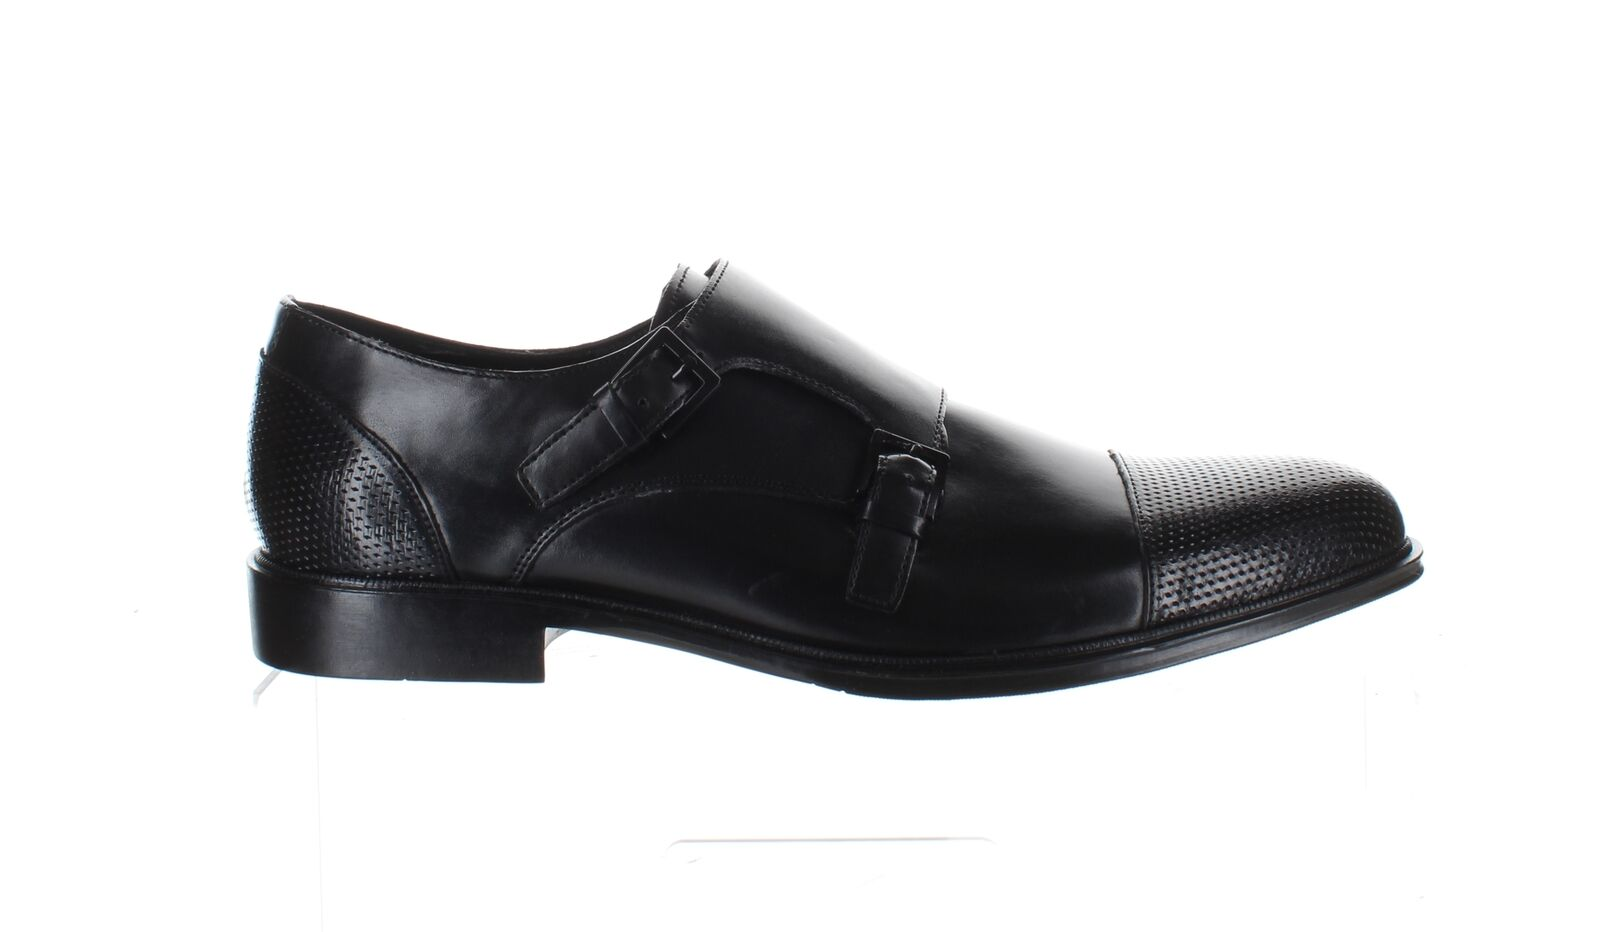 Kenneth Cole Mens Zac Monk Black Loafers Size 11 (1723616)